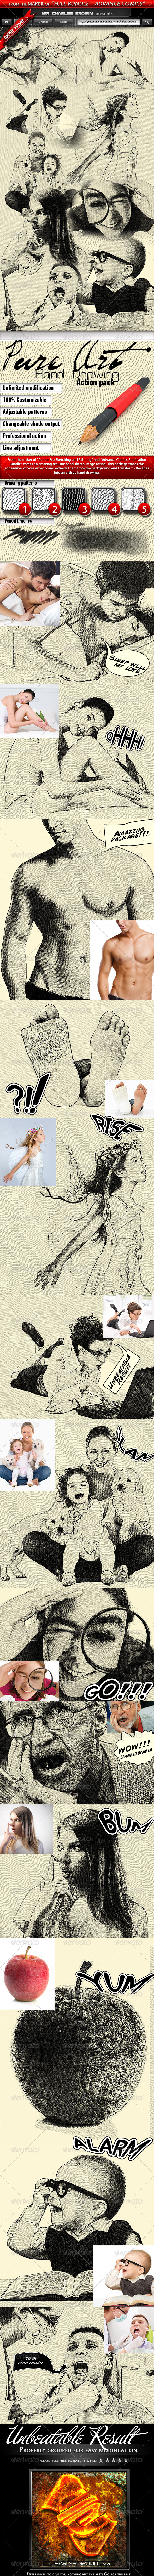 GraphicRiver Pure Art Hand Drawing 3455359